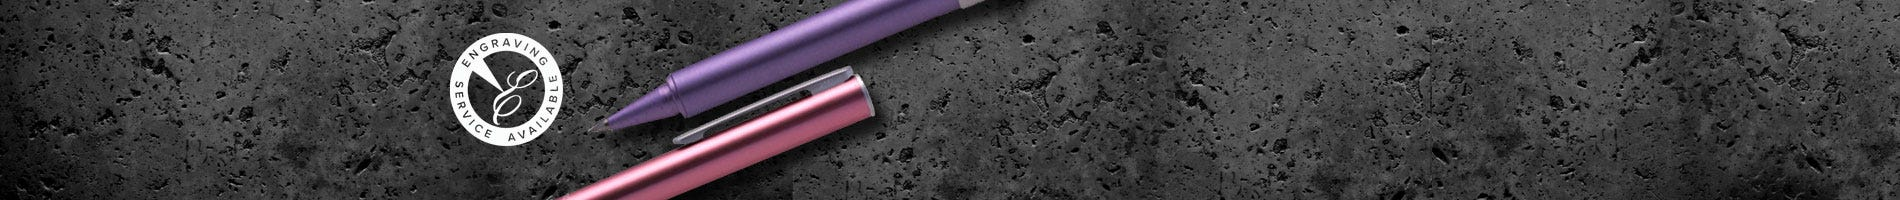 OHTO Tasche pink and purple pens with rollerball ink refill